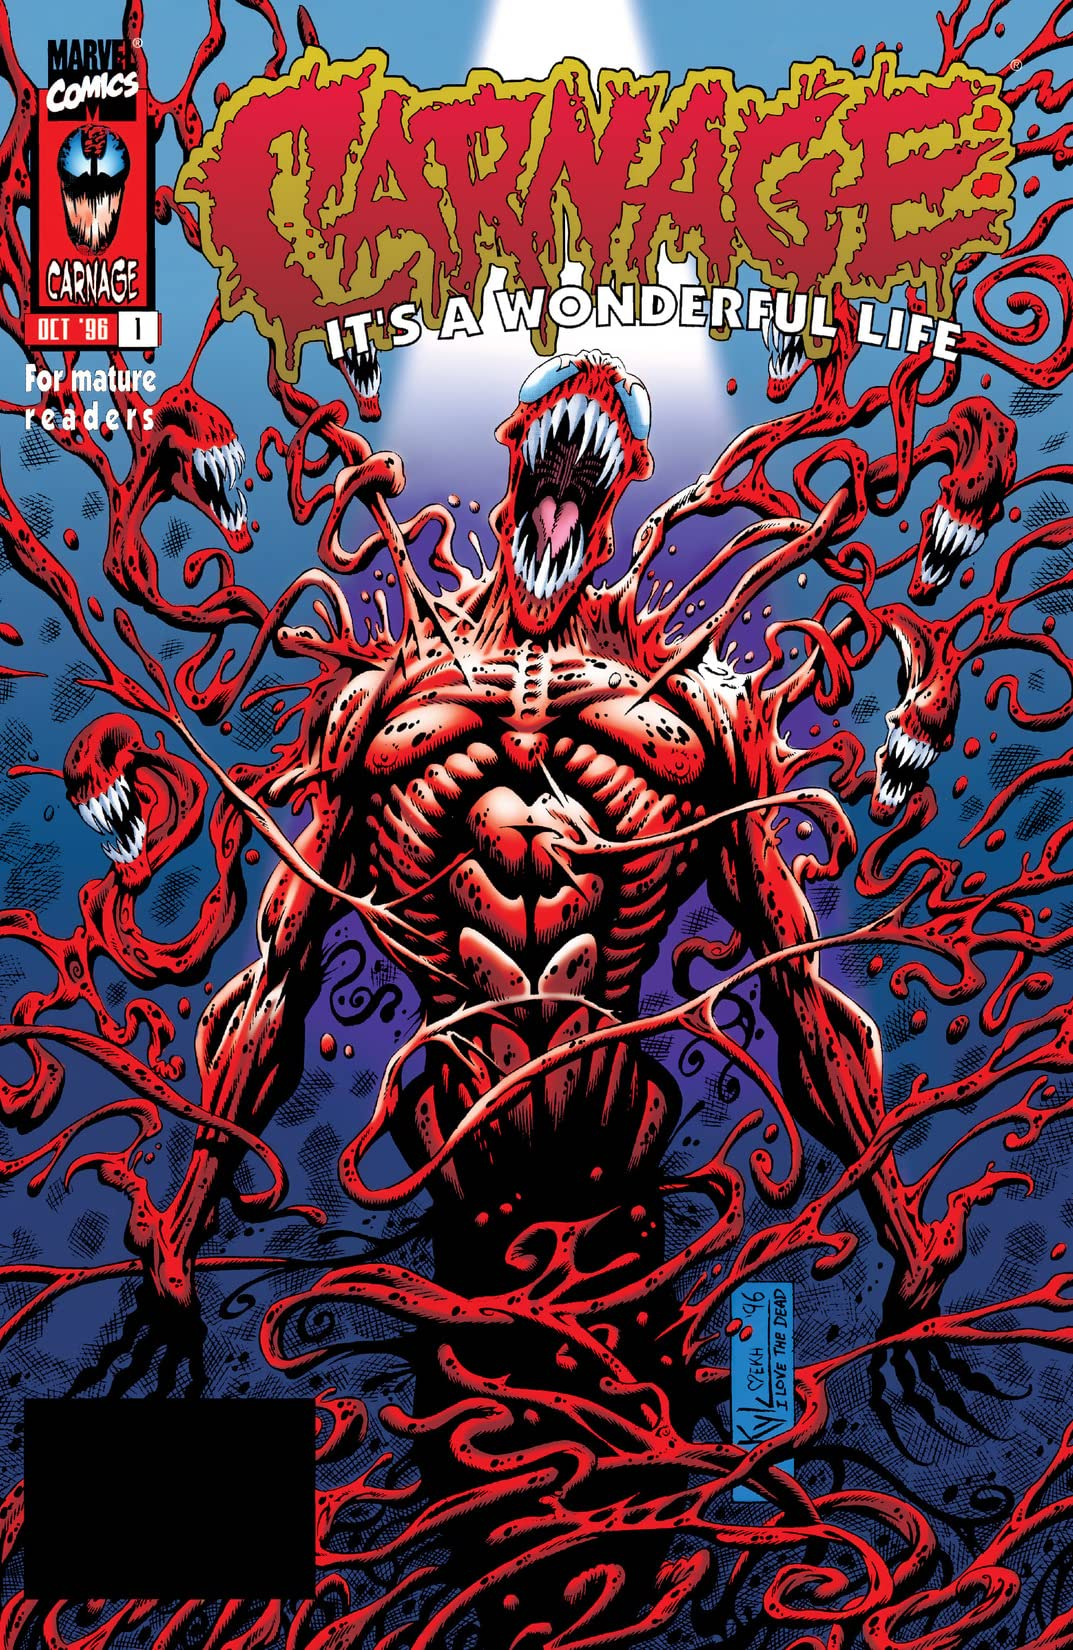 Carnage: It's A Wonderful Life (1996) #1